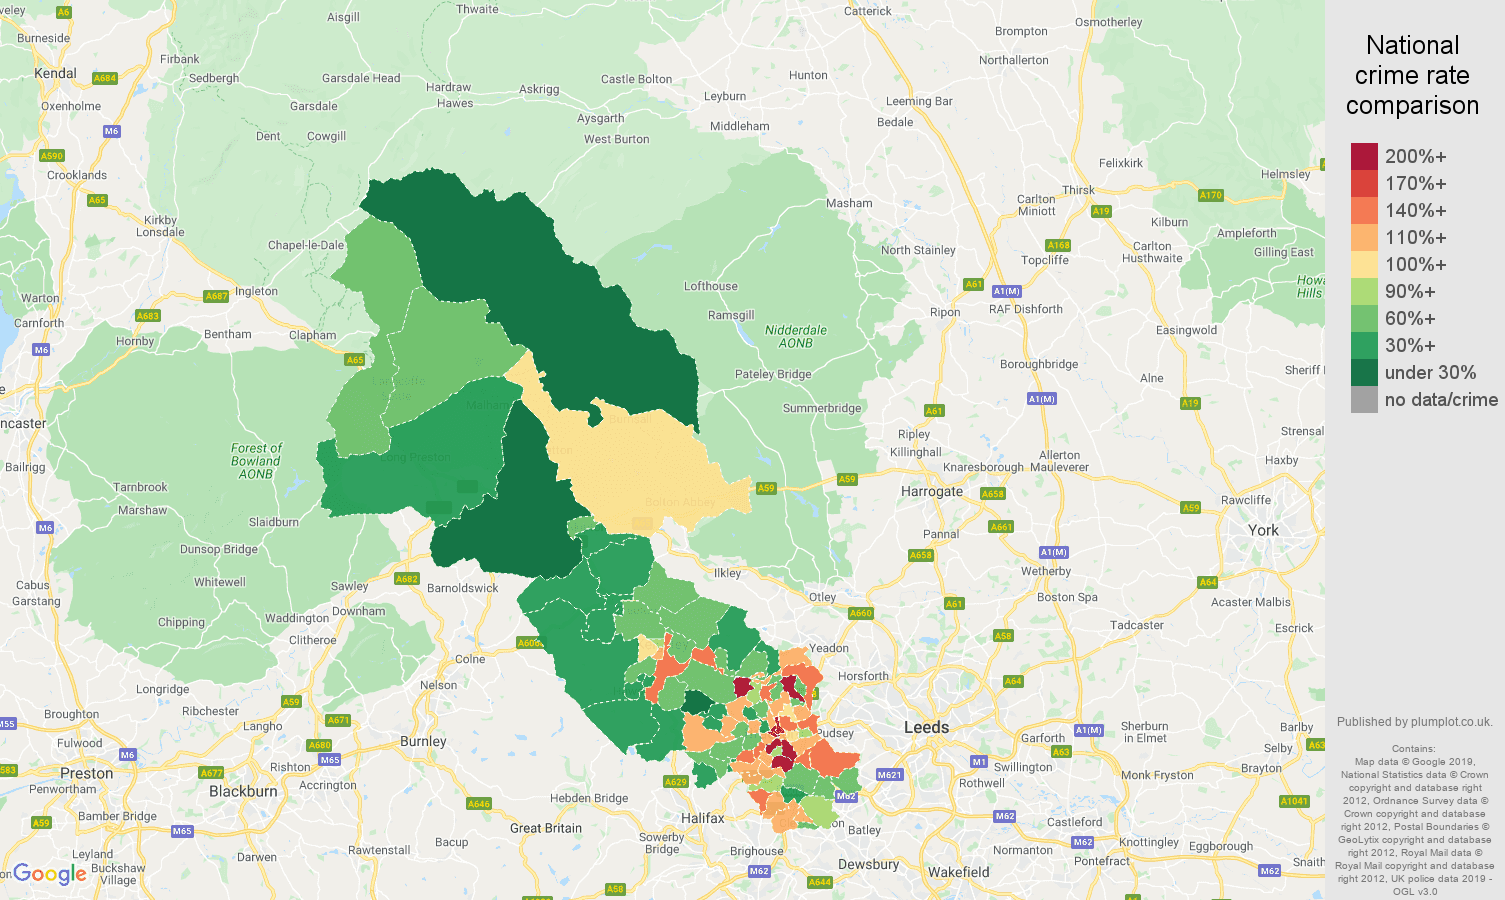 Bradford other theft crime rate comparison map